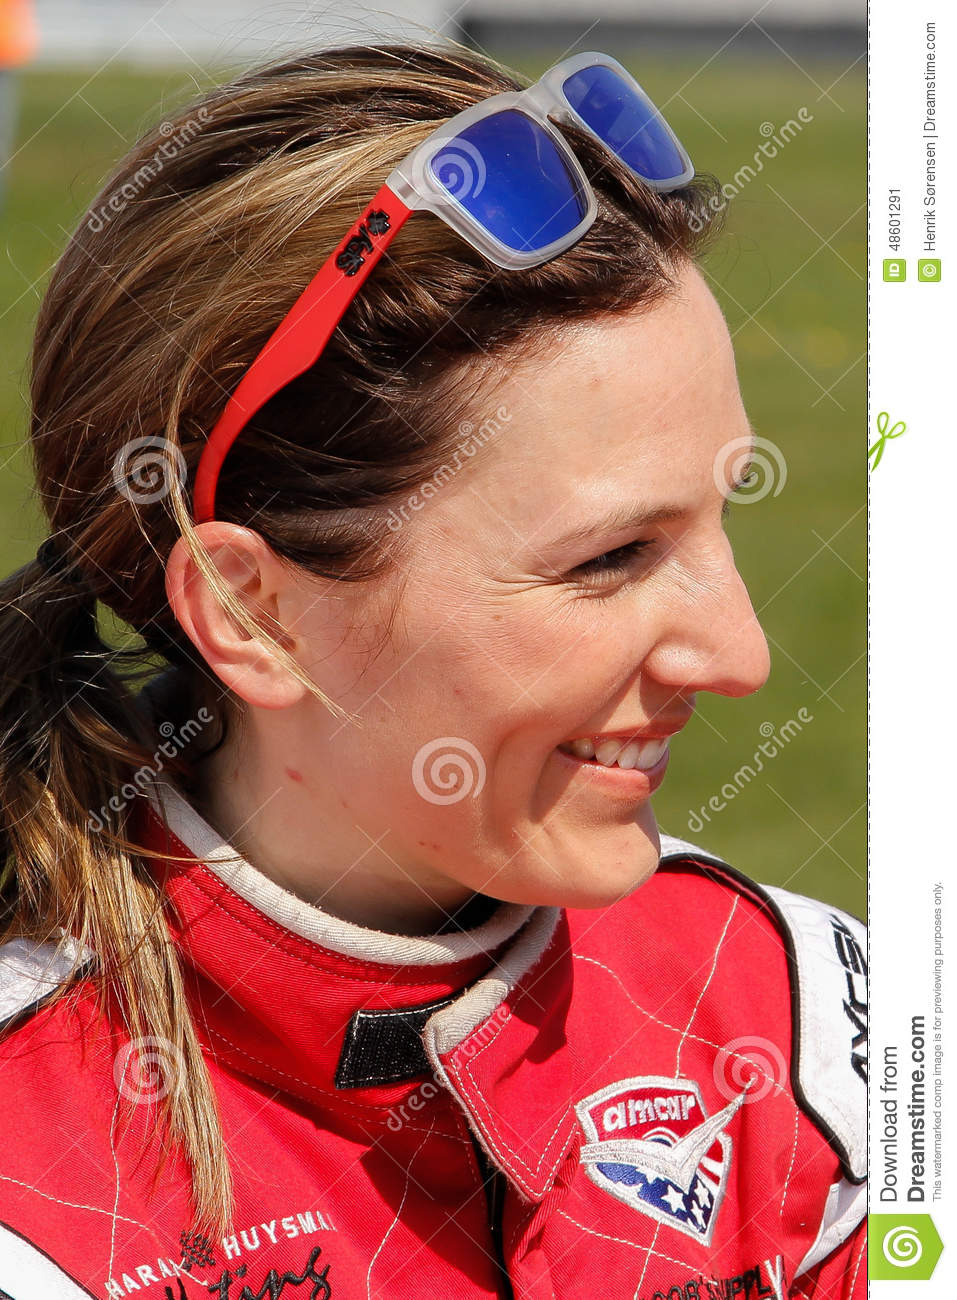 Classic Race Aarhus 2014 - Molly Pettit Editorial Photo - classic-race-aarhus-molly-pettit-denmark-may-norwegian-racing-driver-here-48601291